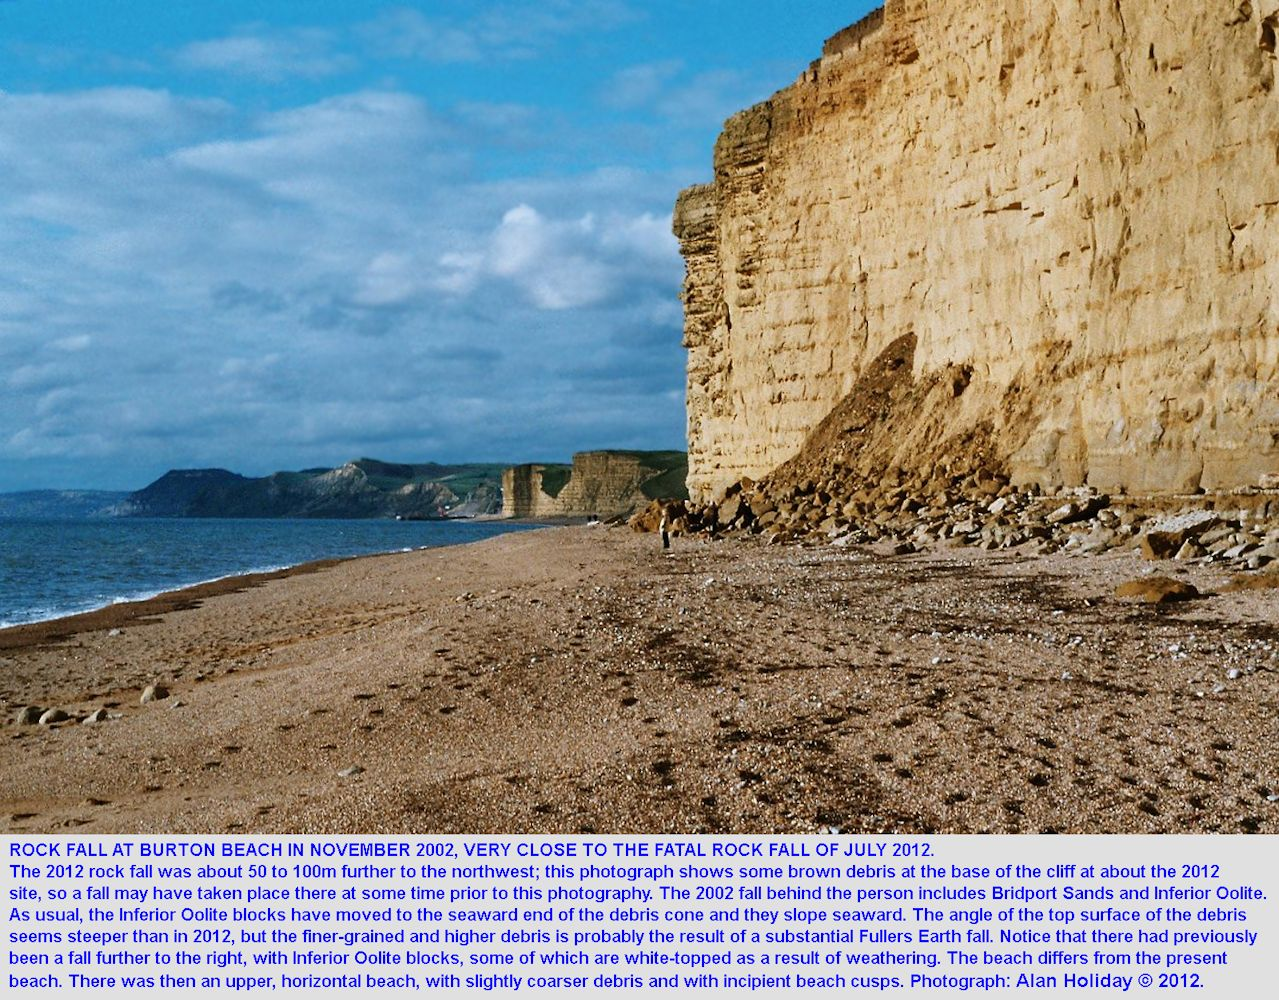 Rock fall in November 2002 at a site close to that of the fatal 2012 rock fall, Burton Cliff, Burton Bradstock, Dorset, photograph by Alan Holiday